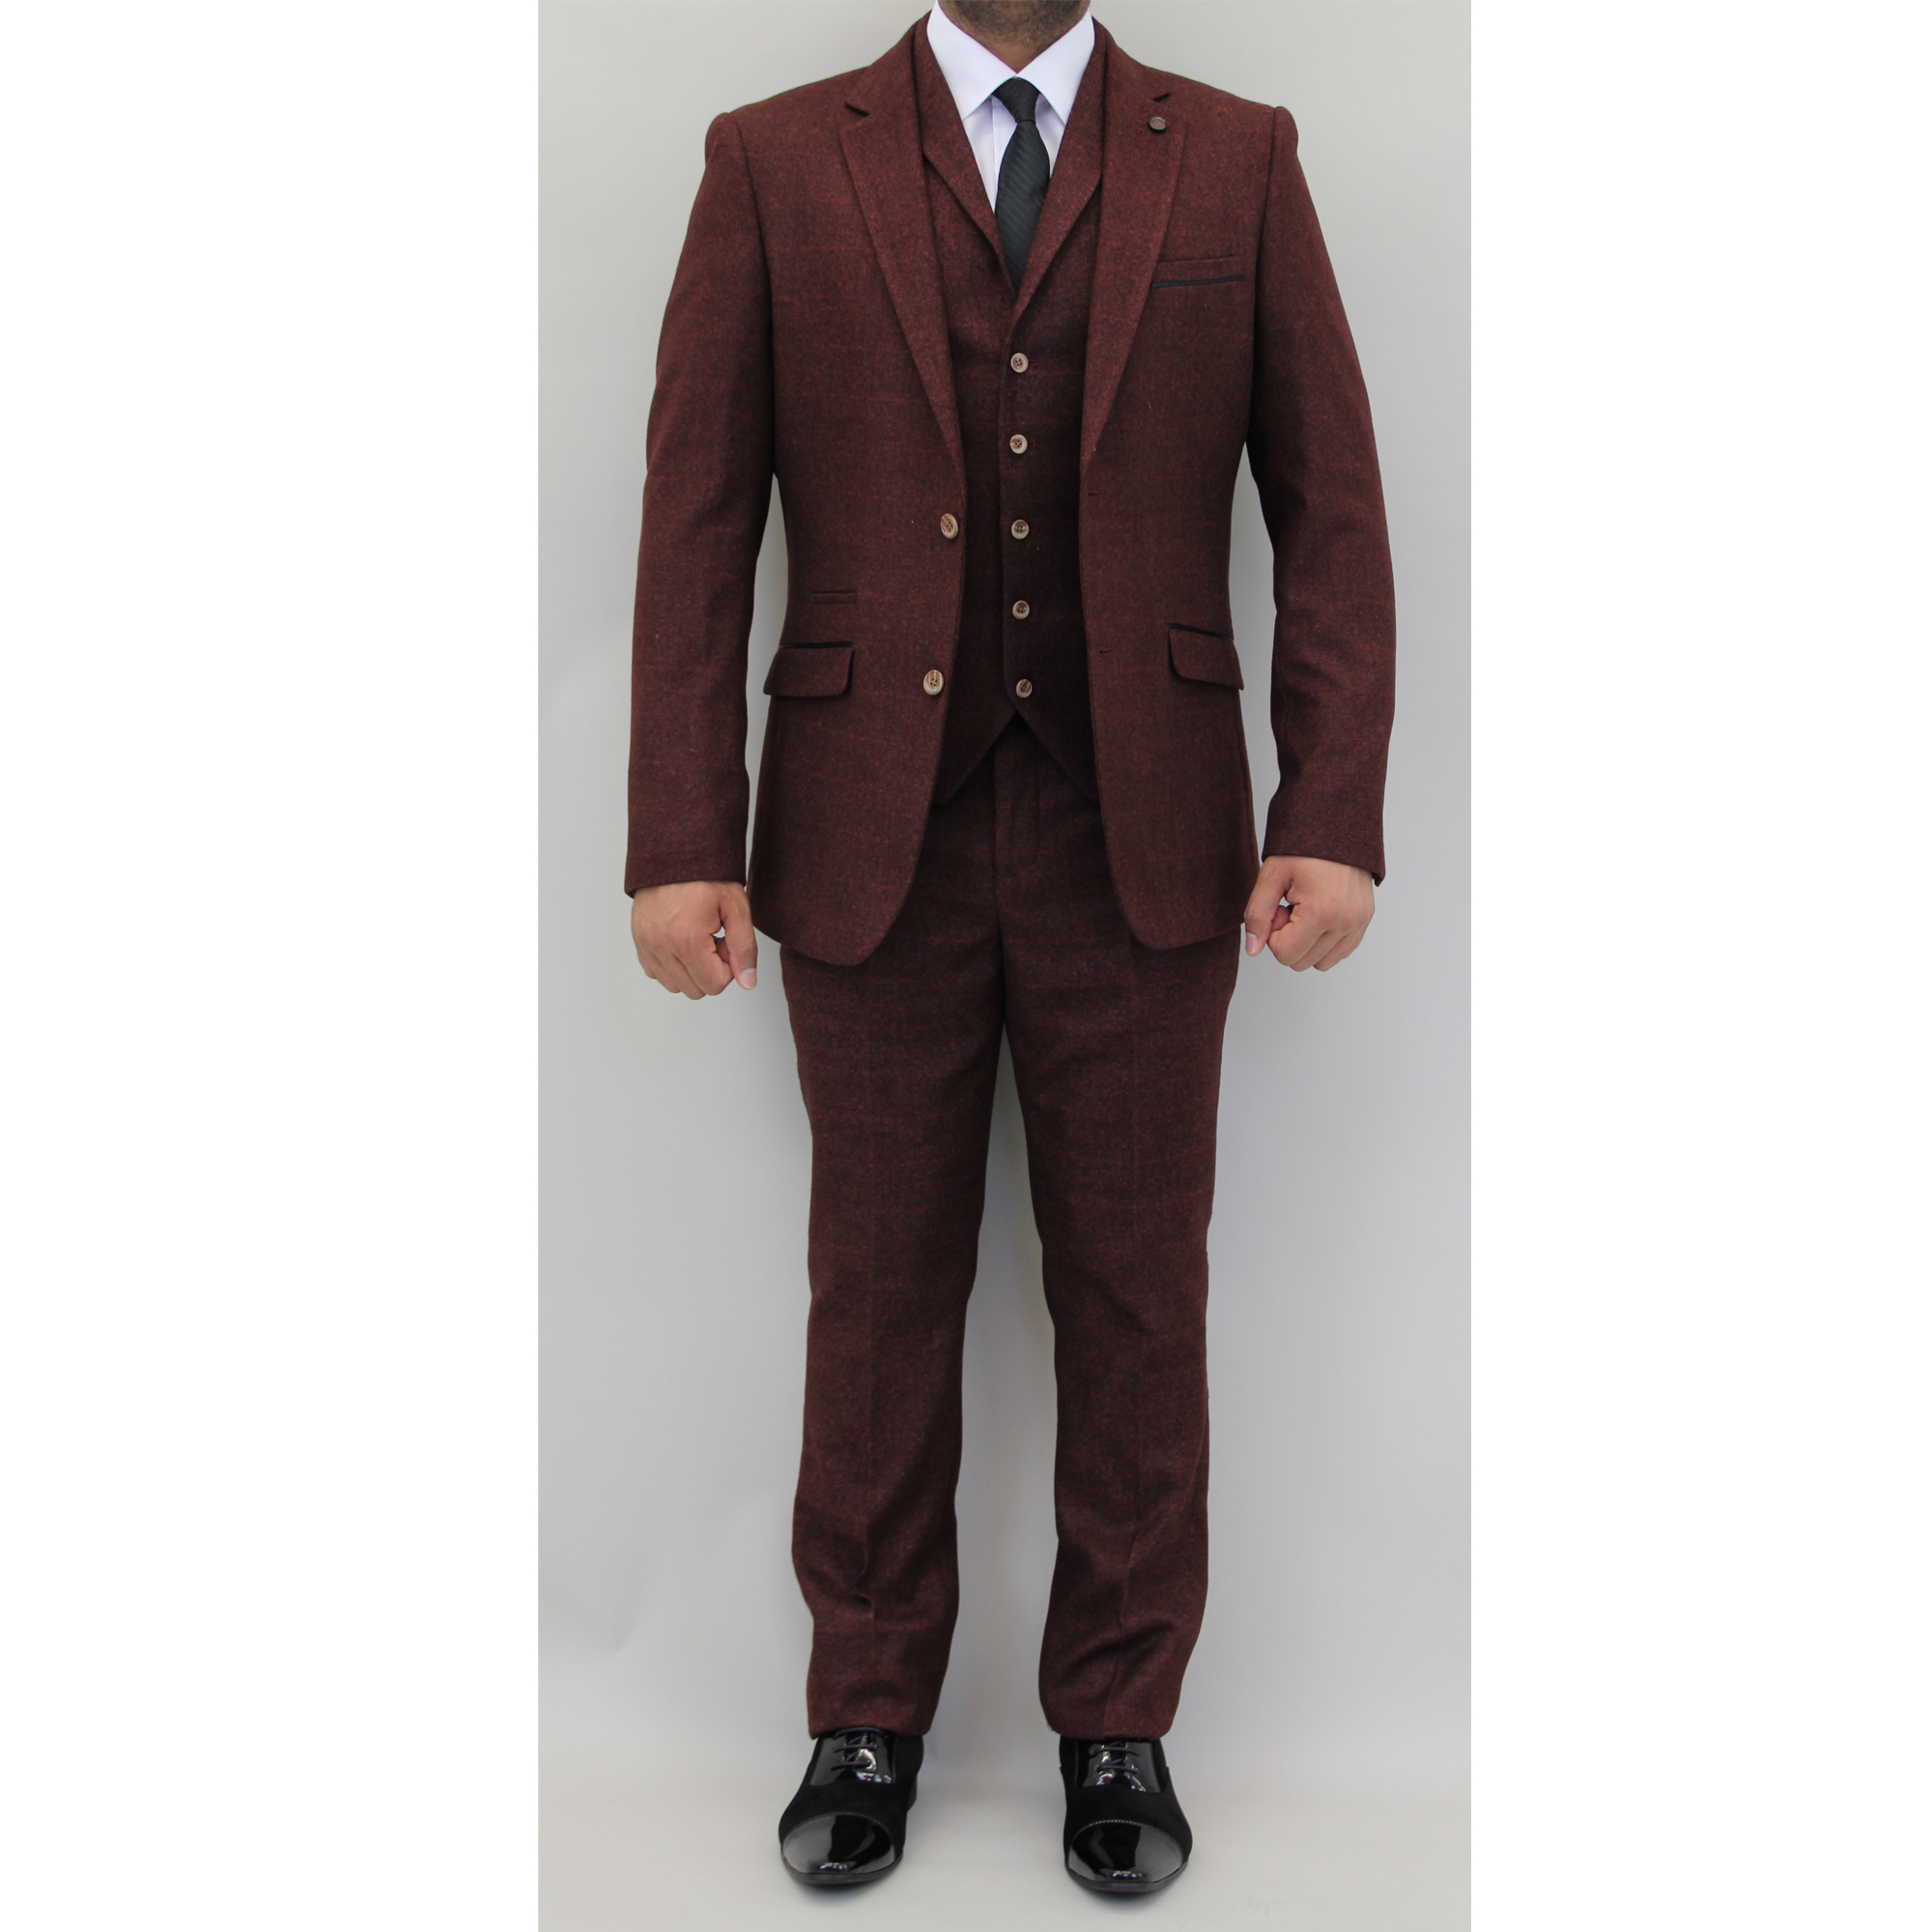 Slim Fit Suits. Designed for fashionably modern men, slim fit suits are the the most popular in our mens suiting and tailoring range, because of how cutting and stylish they are, compared to regular tailored suits.